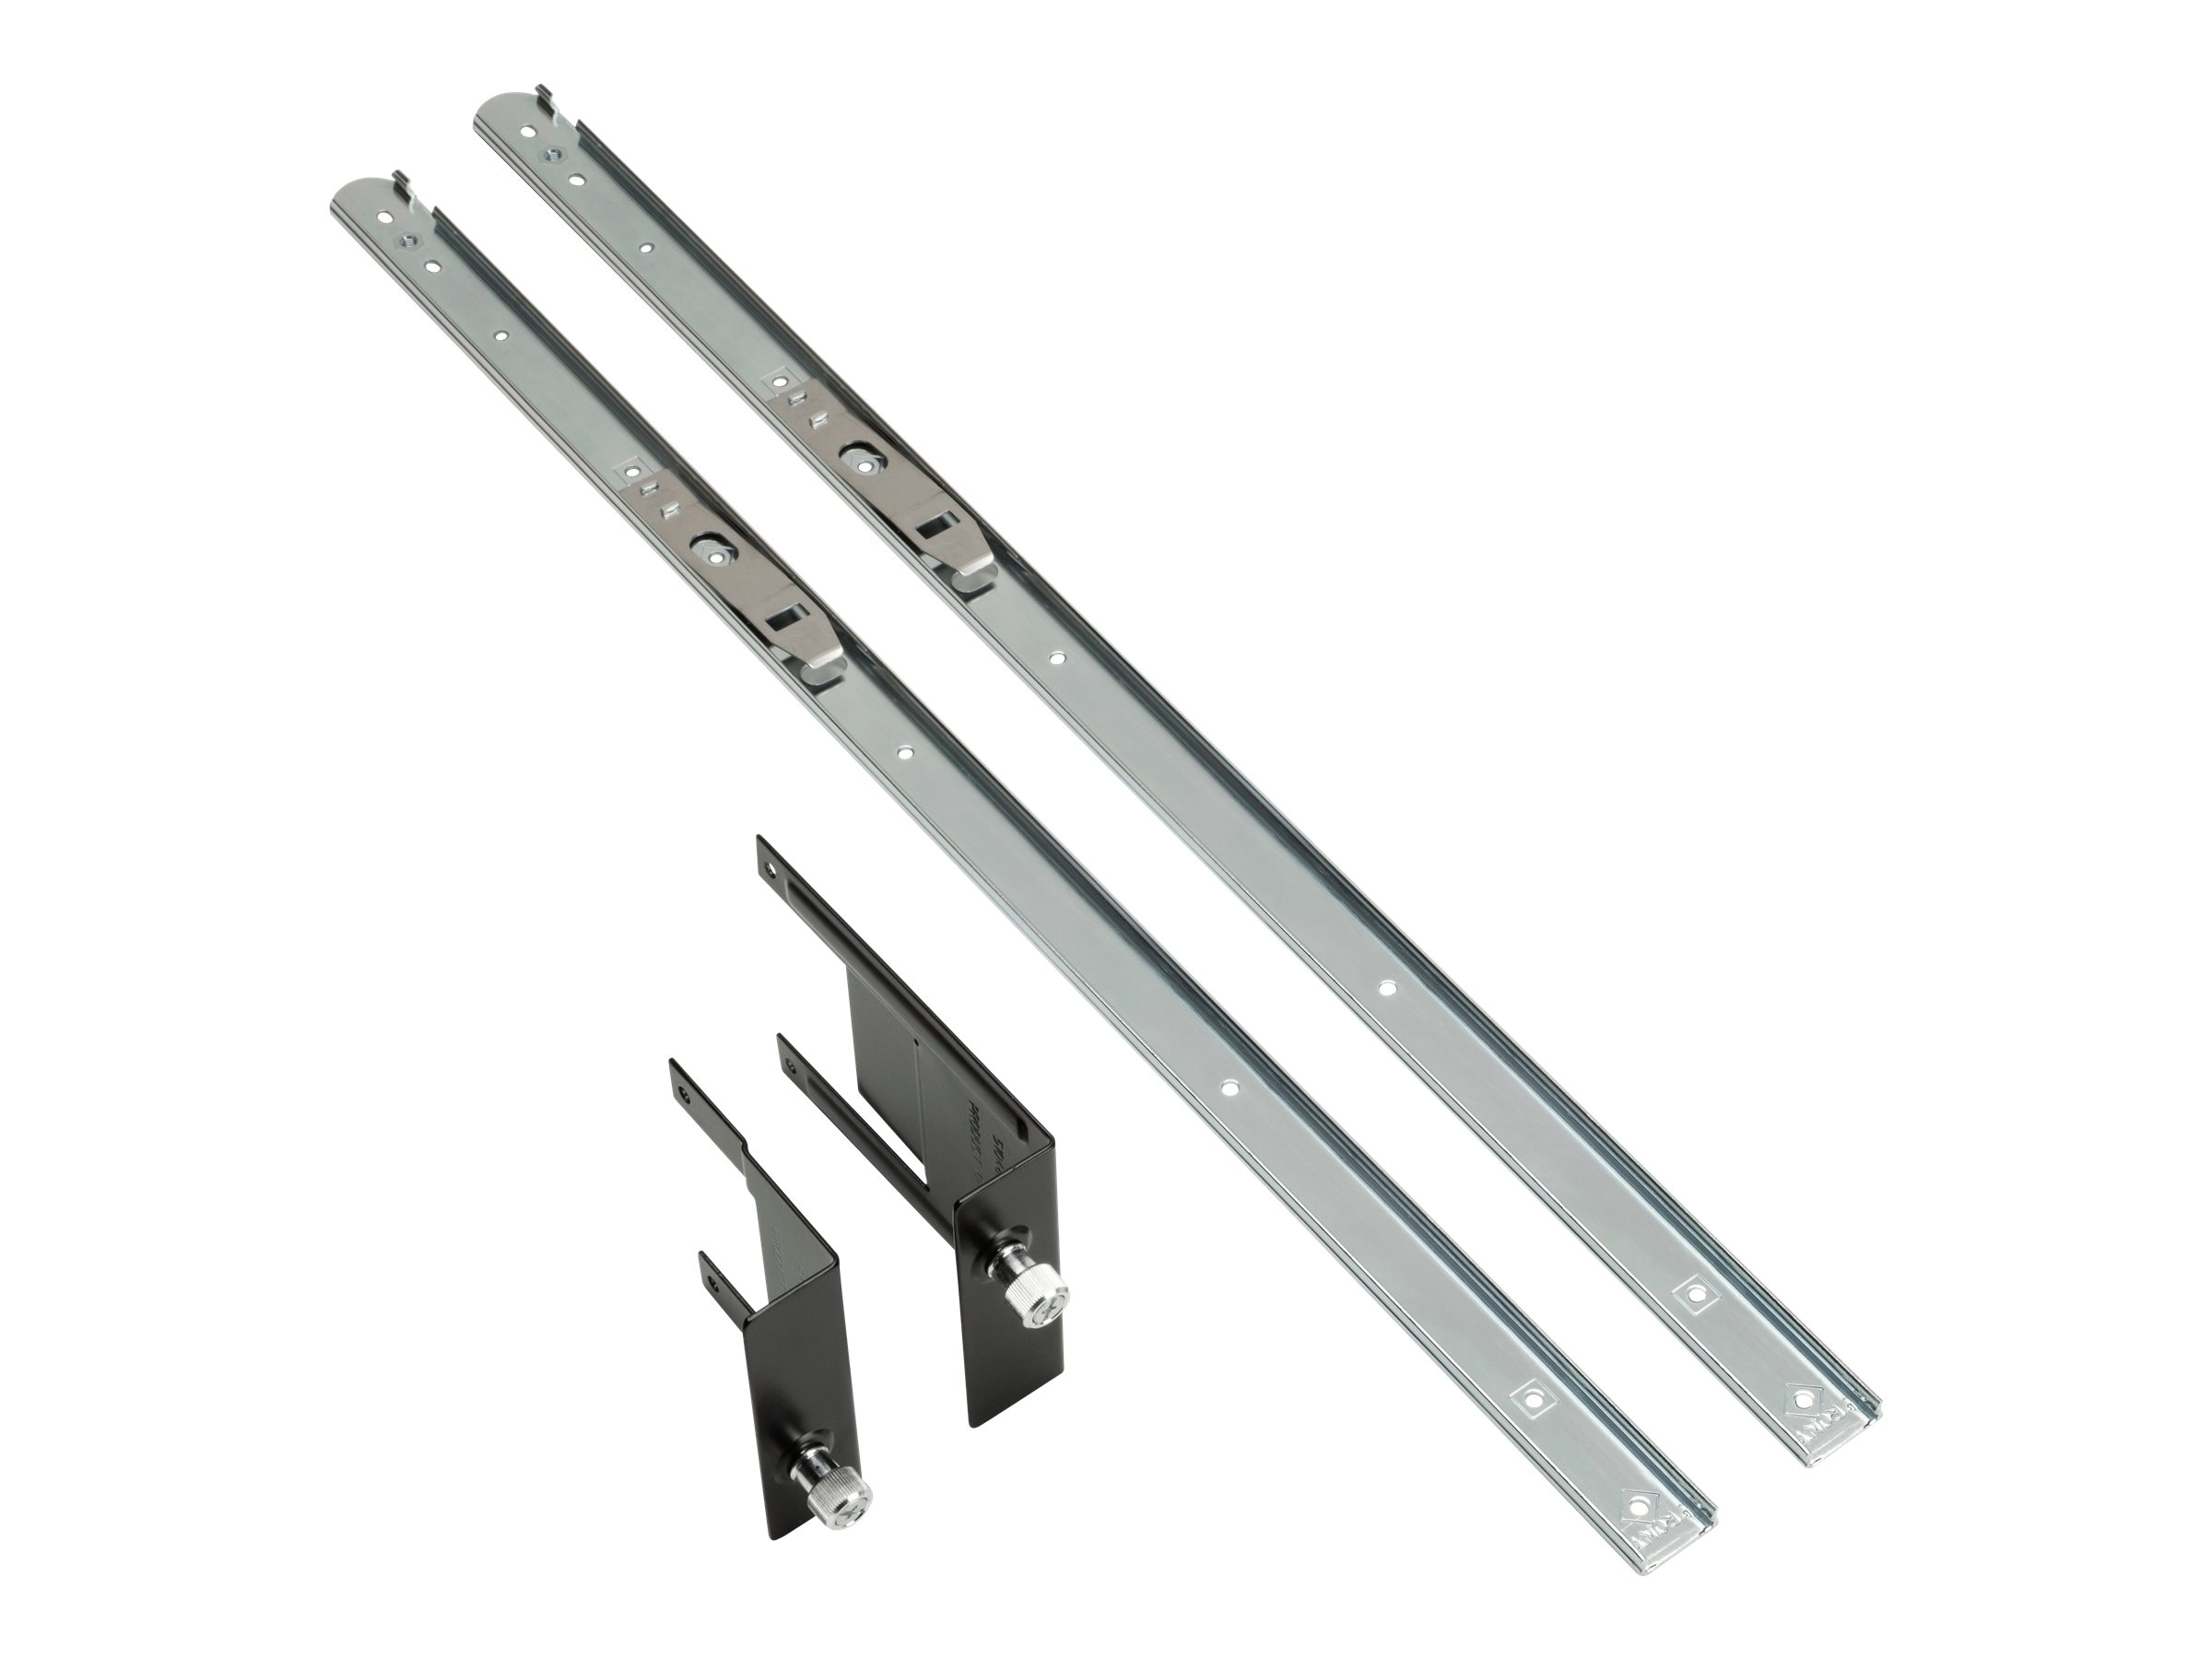 HP Z8 rack rail kit